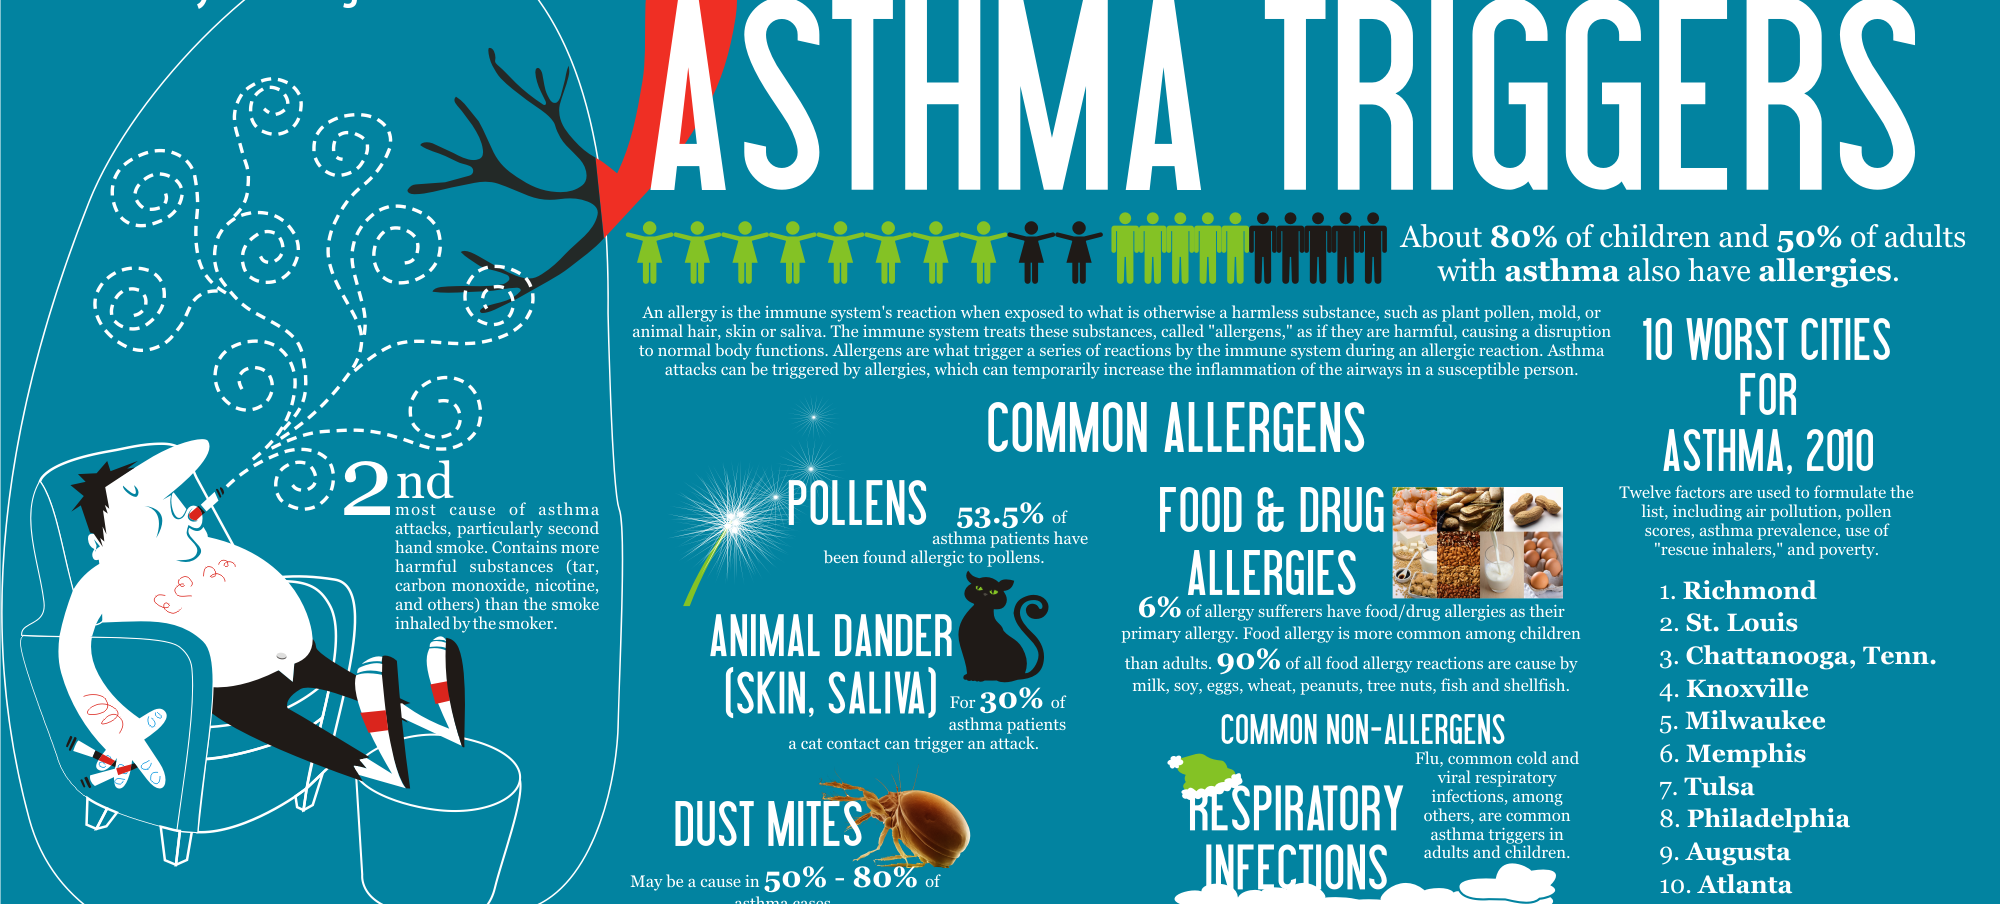 5 Everyday Things That Trigger Asthma